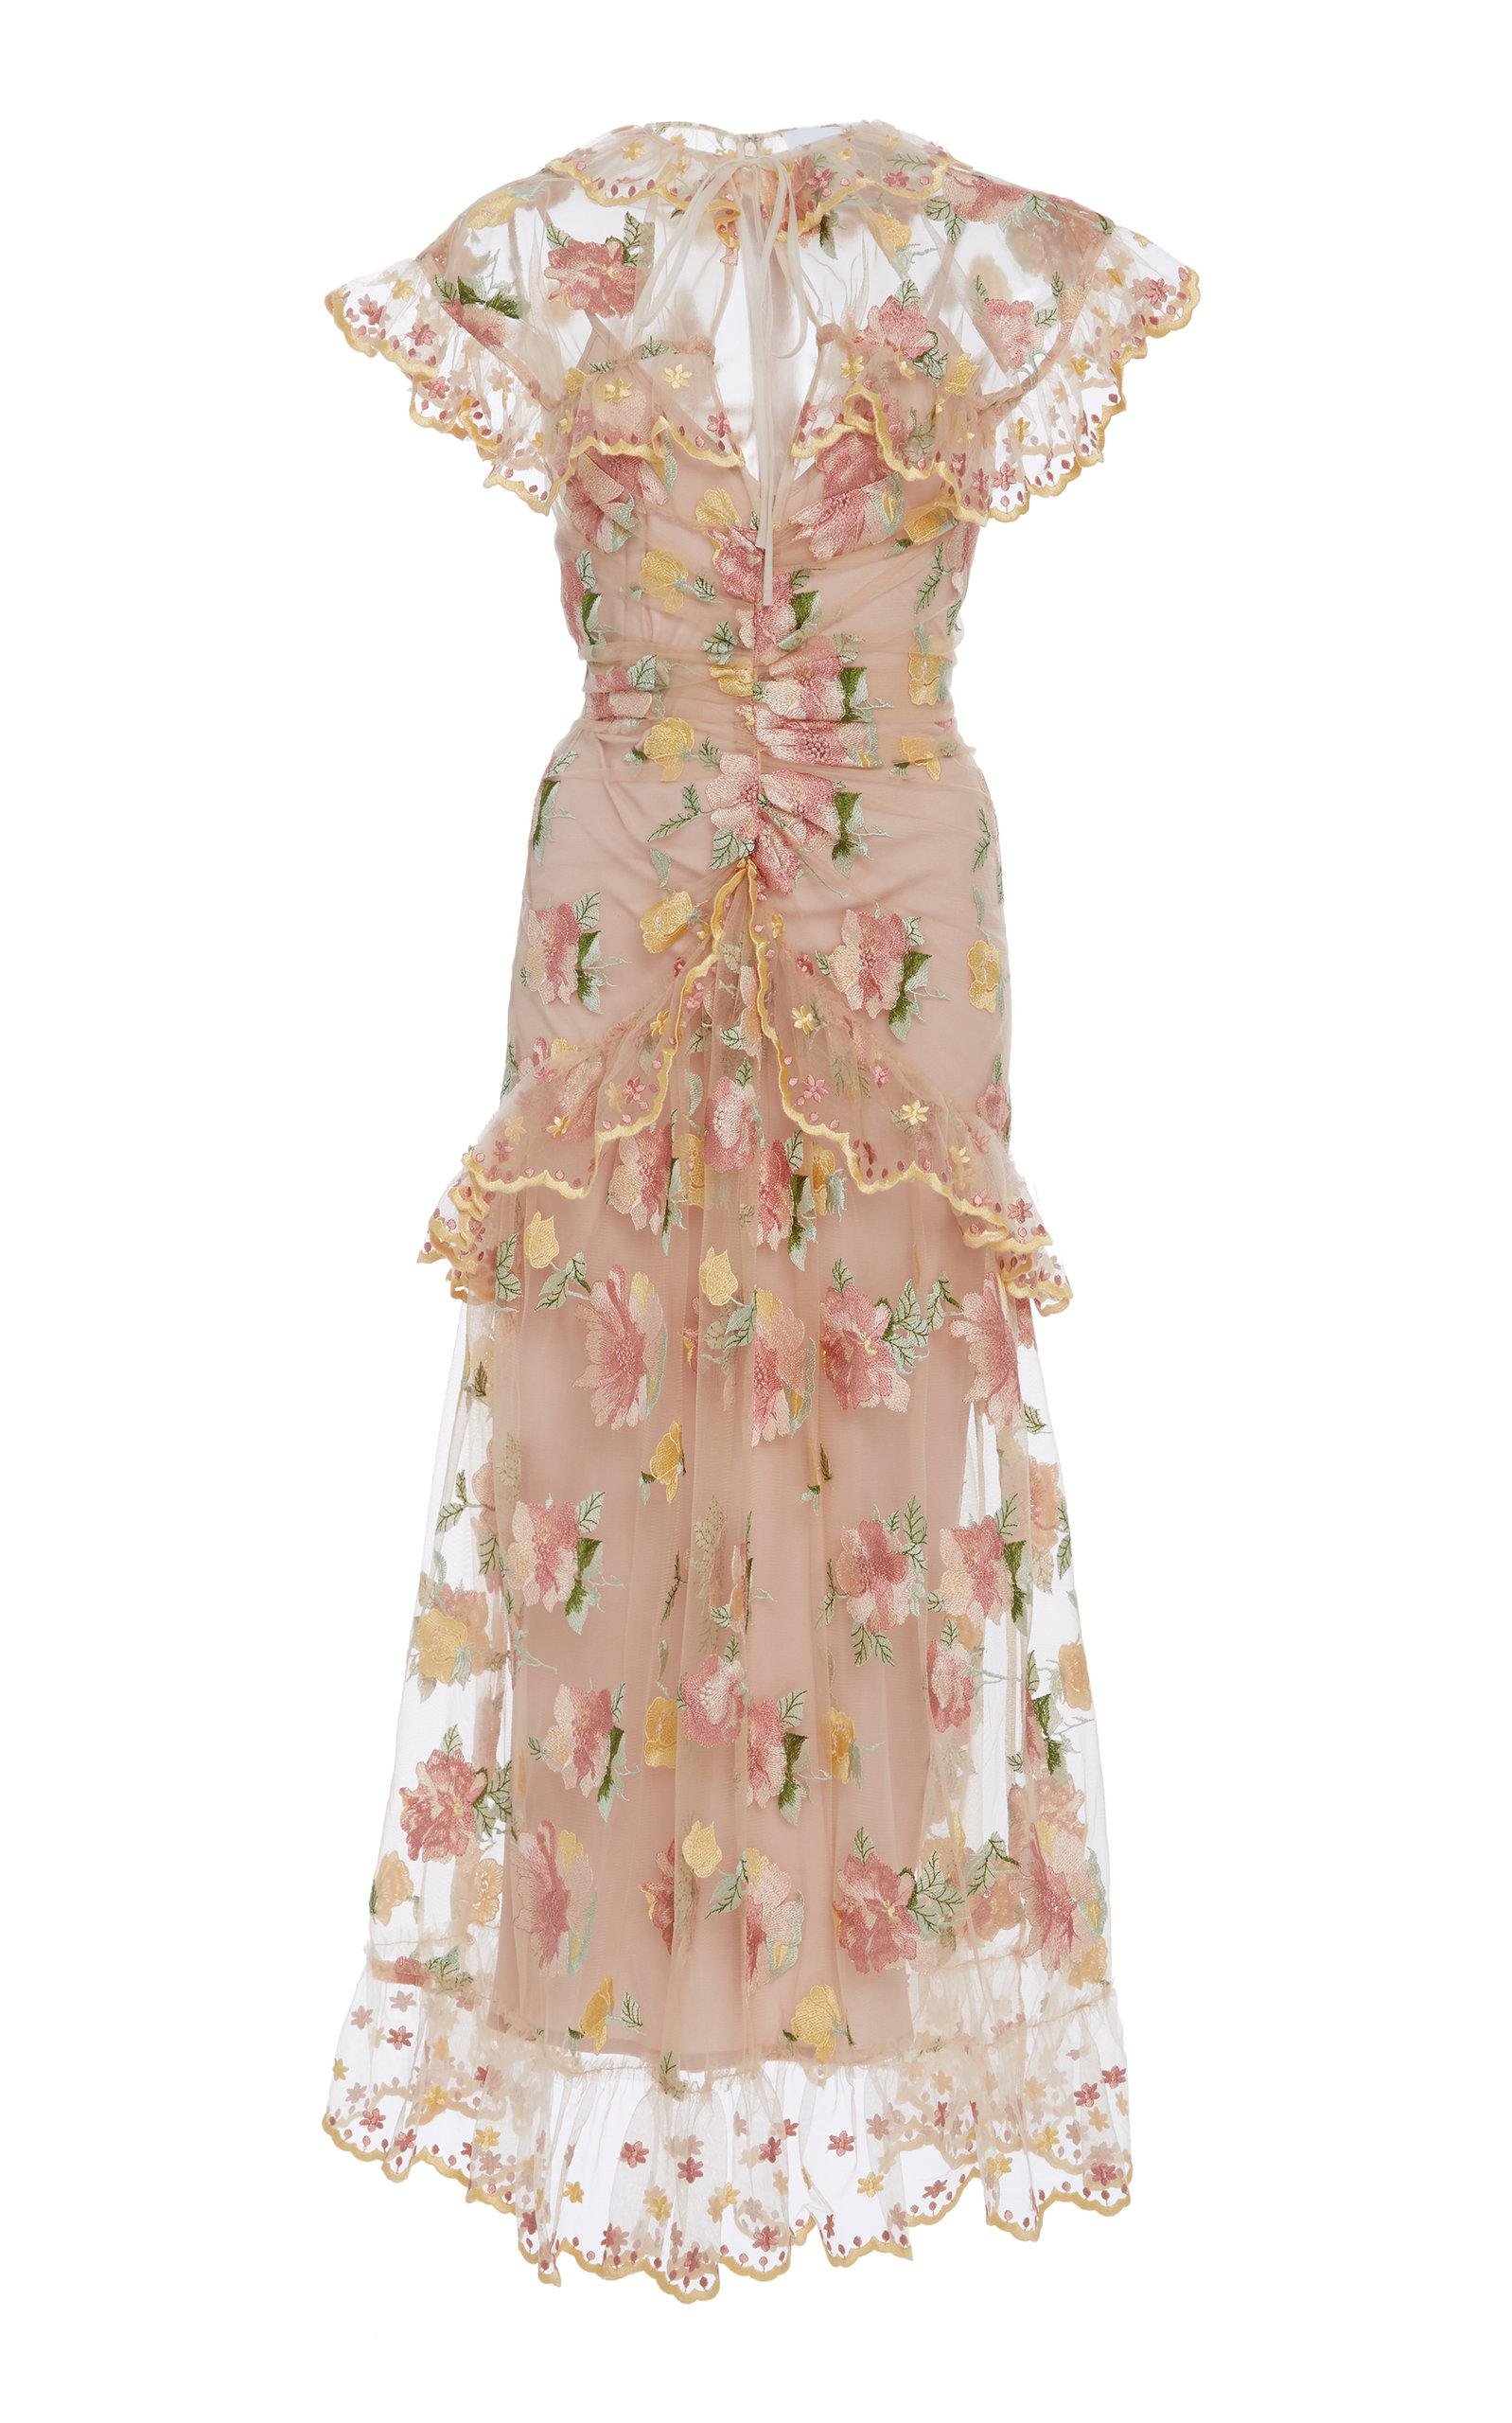 Alice Mccall Floating Delicately Dress In Floral